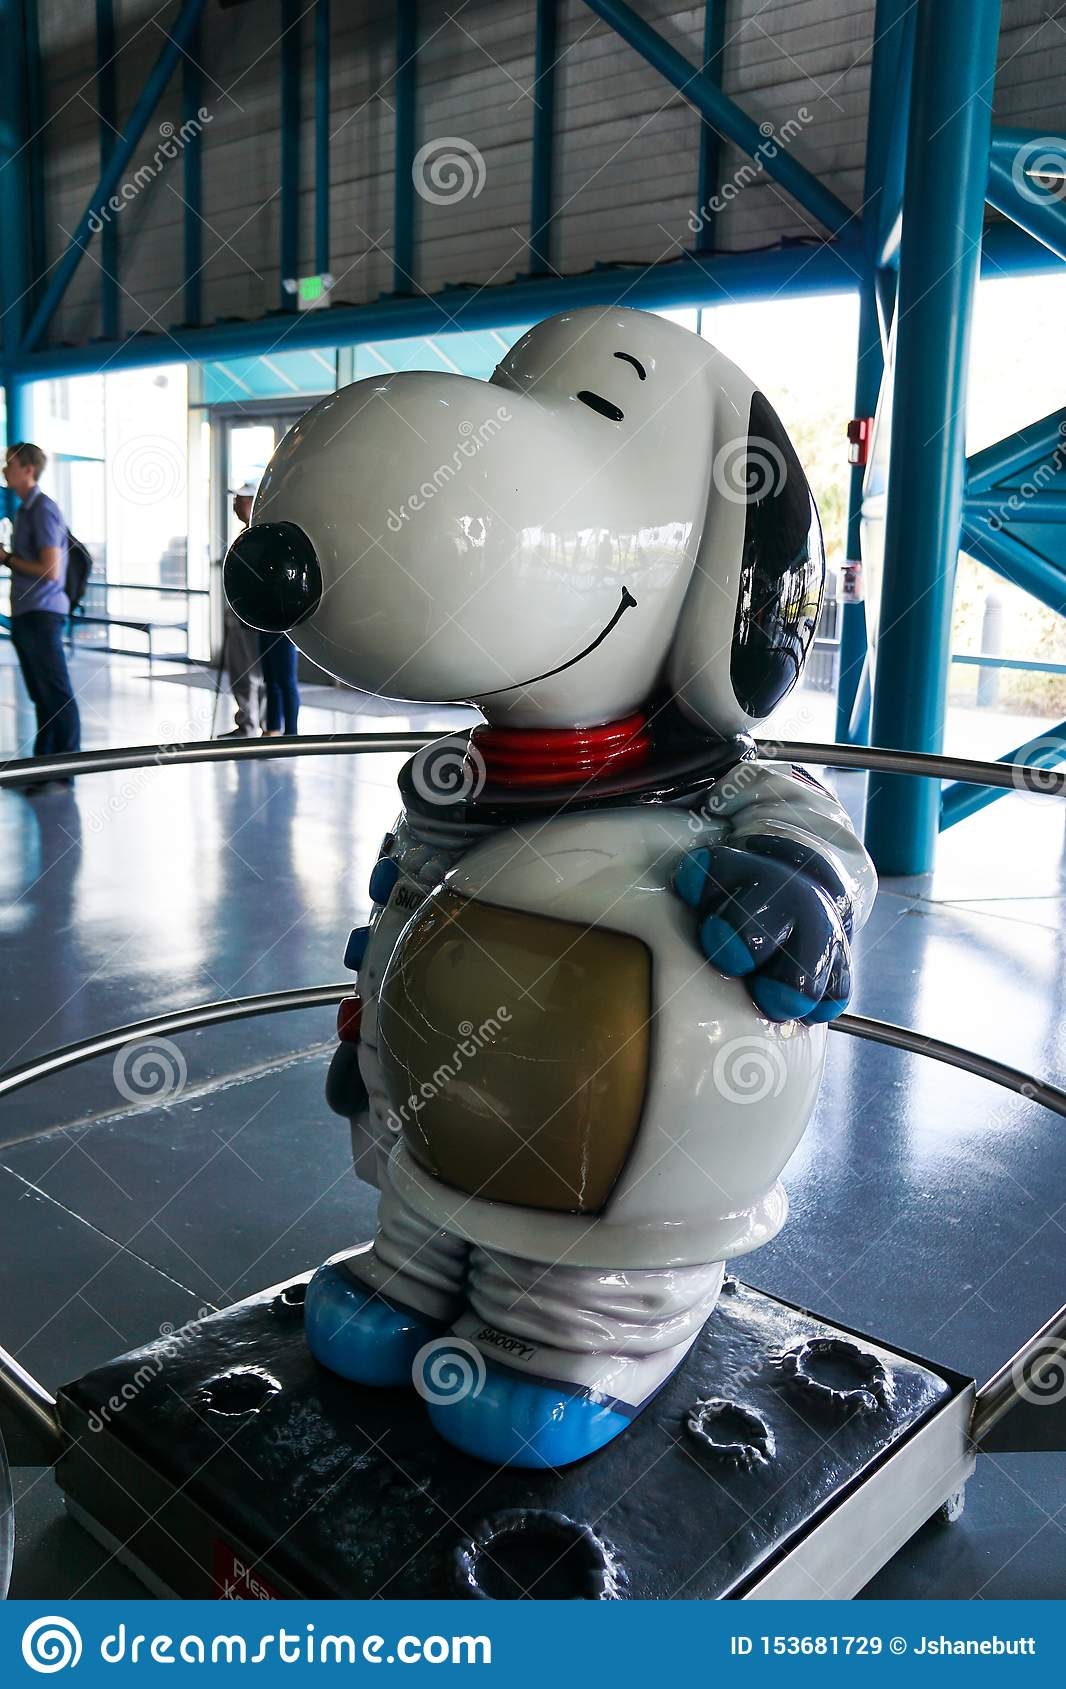 Snoopy the astronaut in a space suit